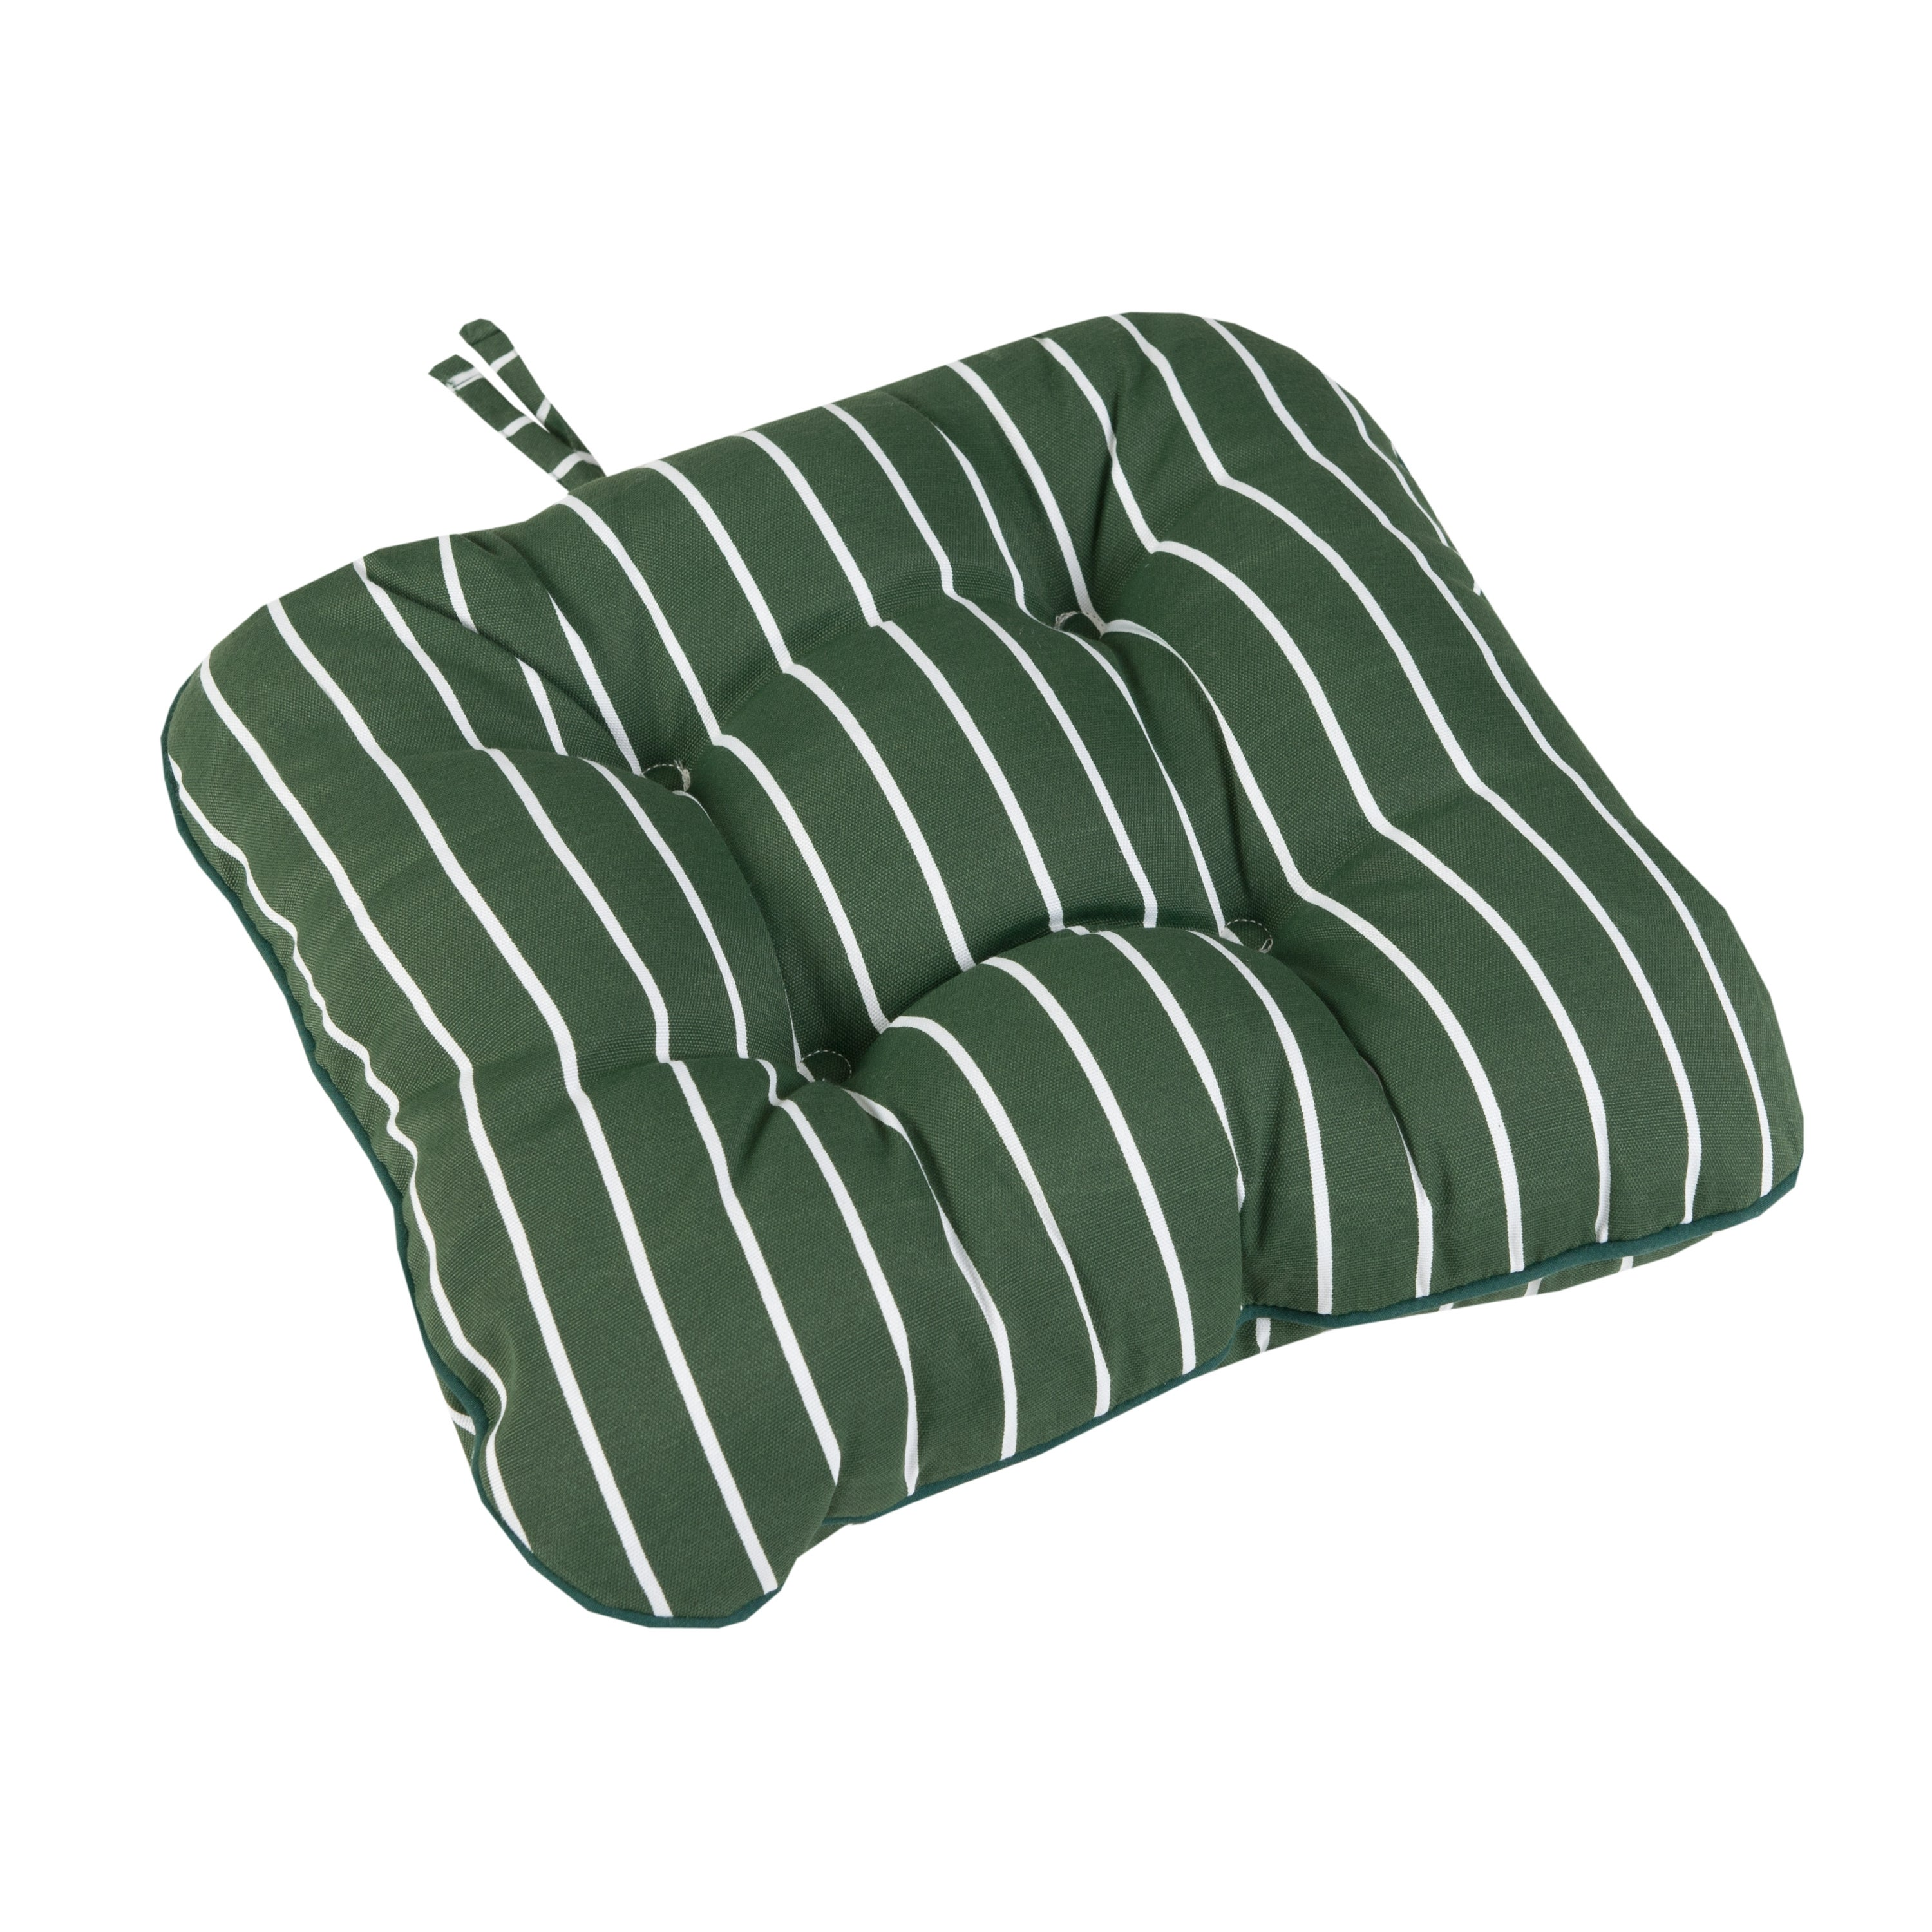 Green Stripe Seat Pad